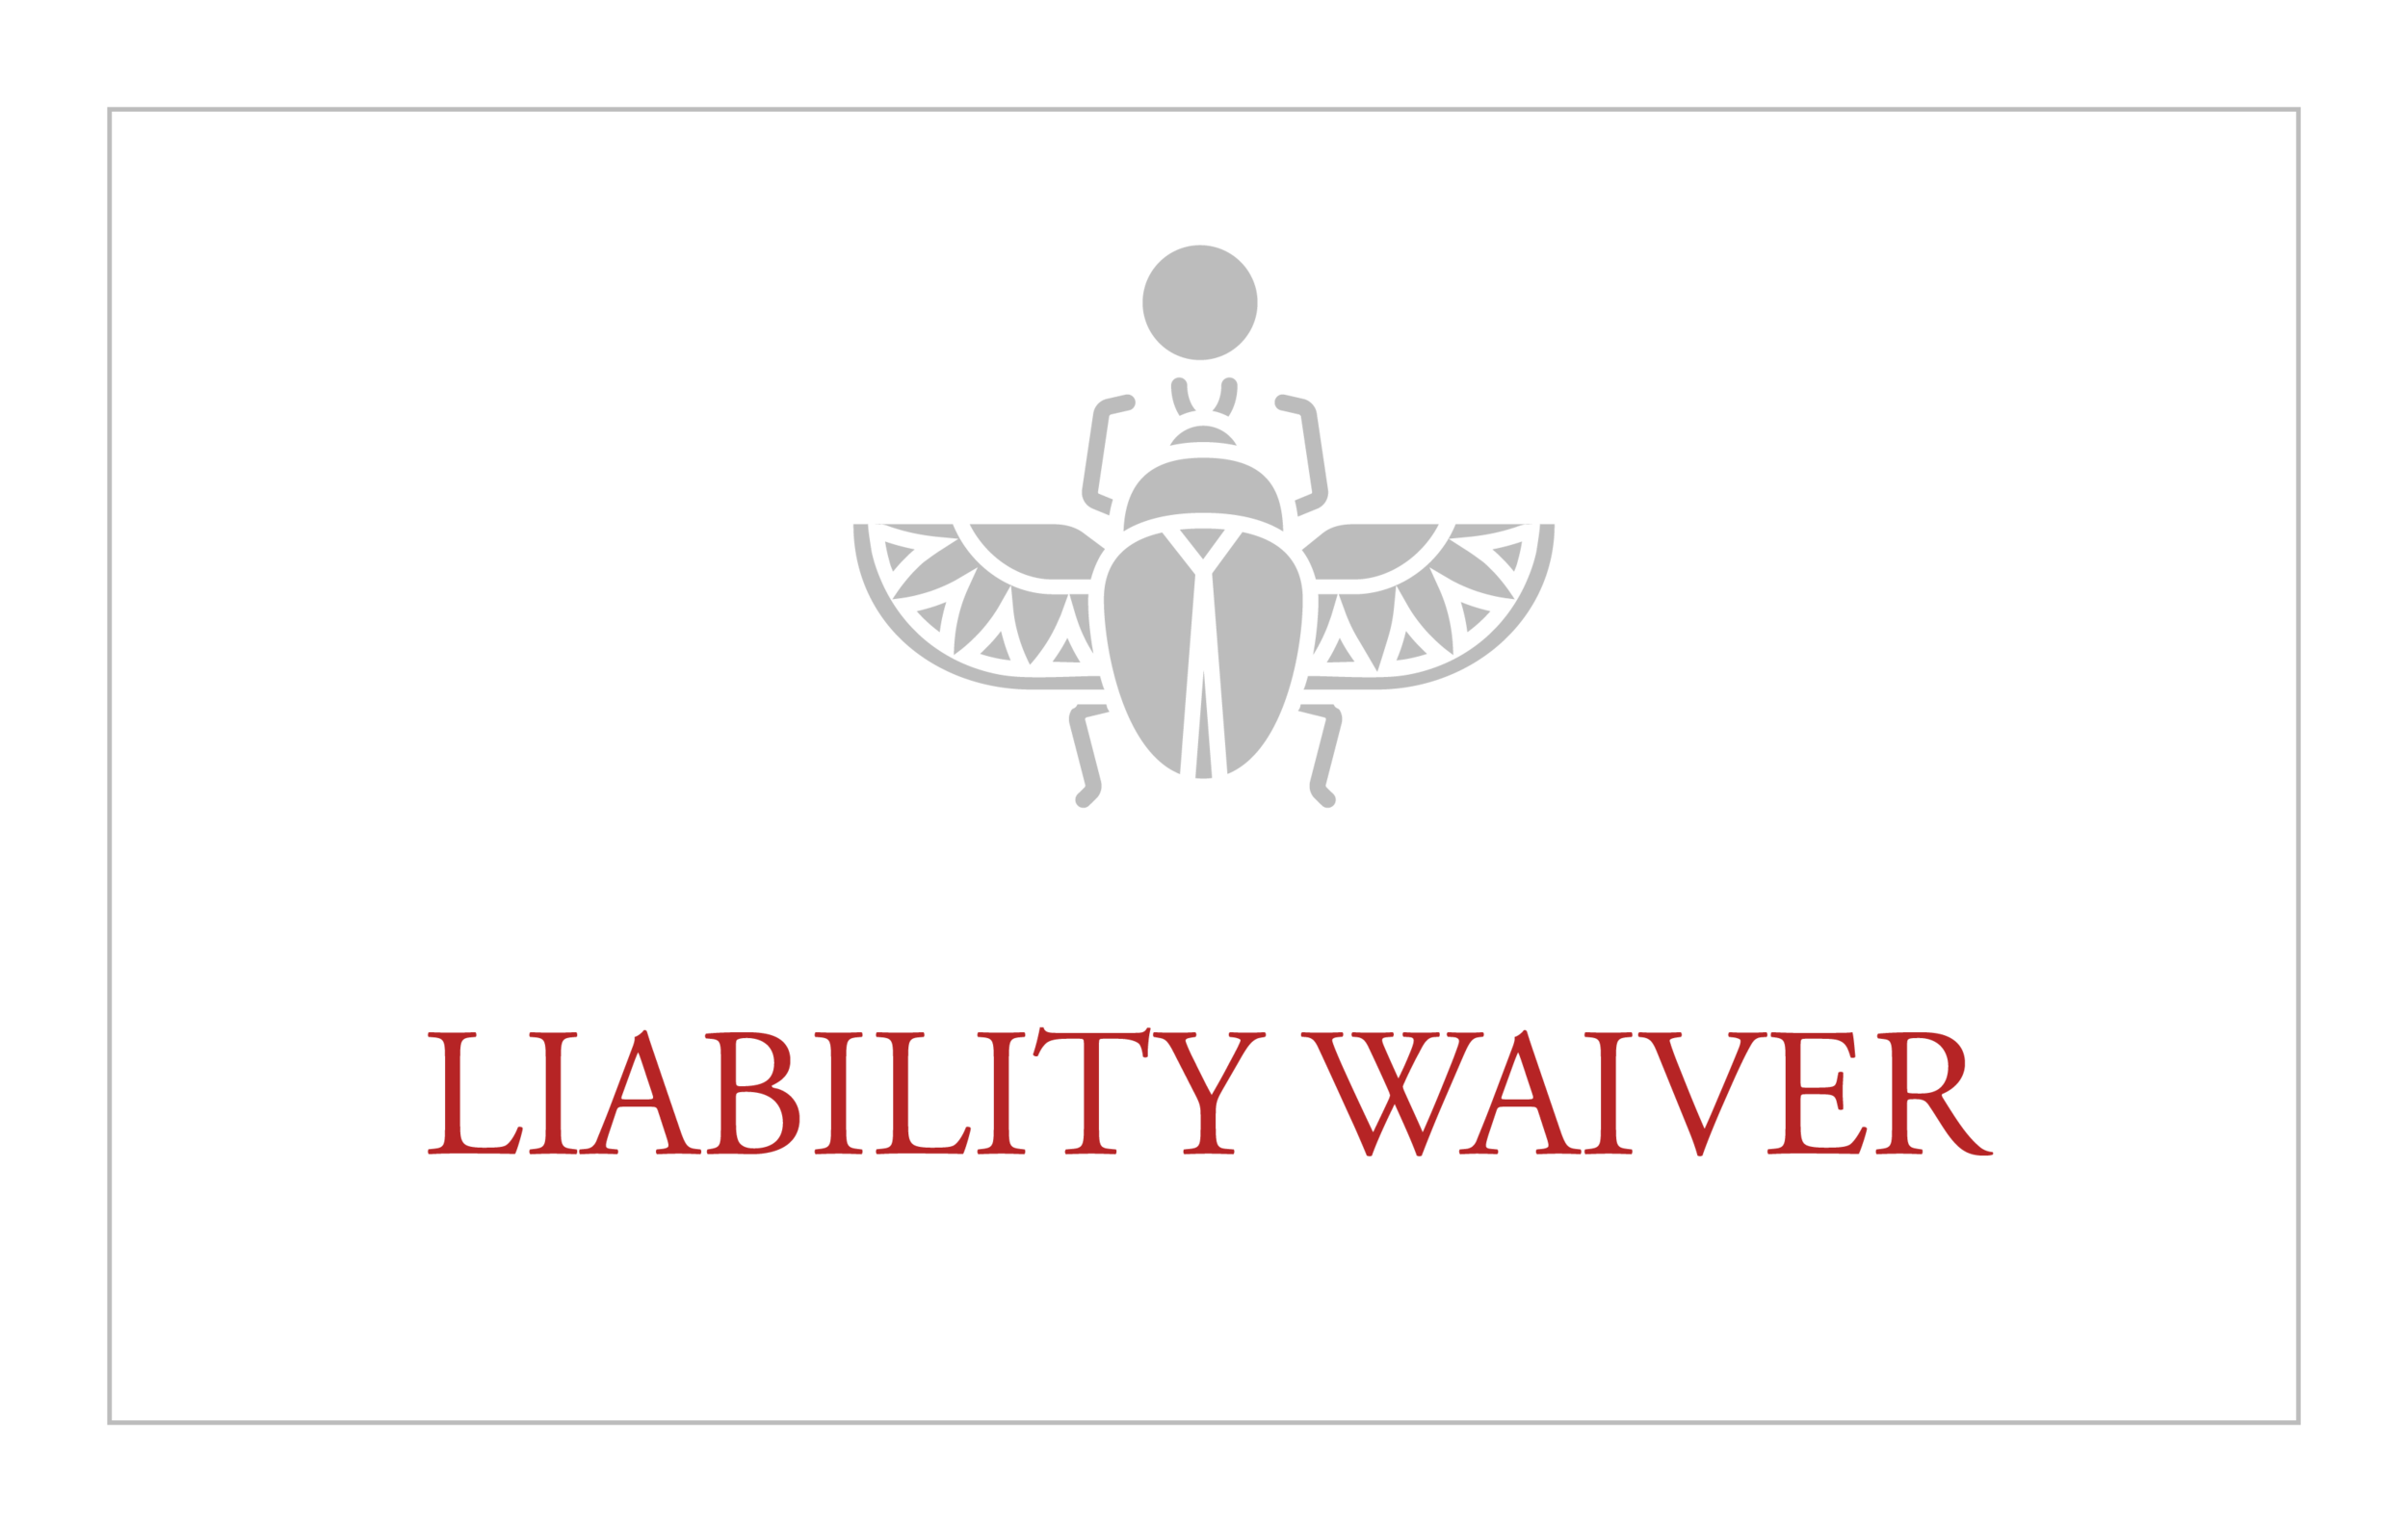 Liability-Waiver-01.png